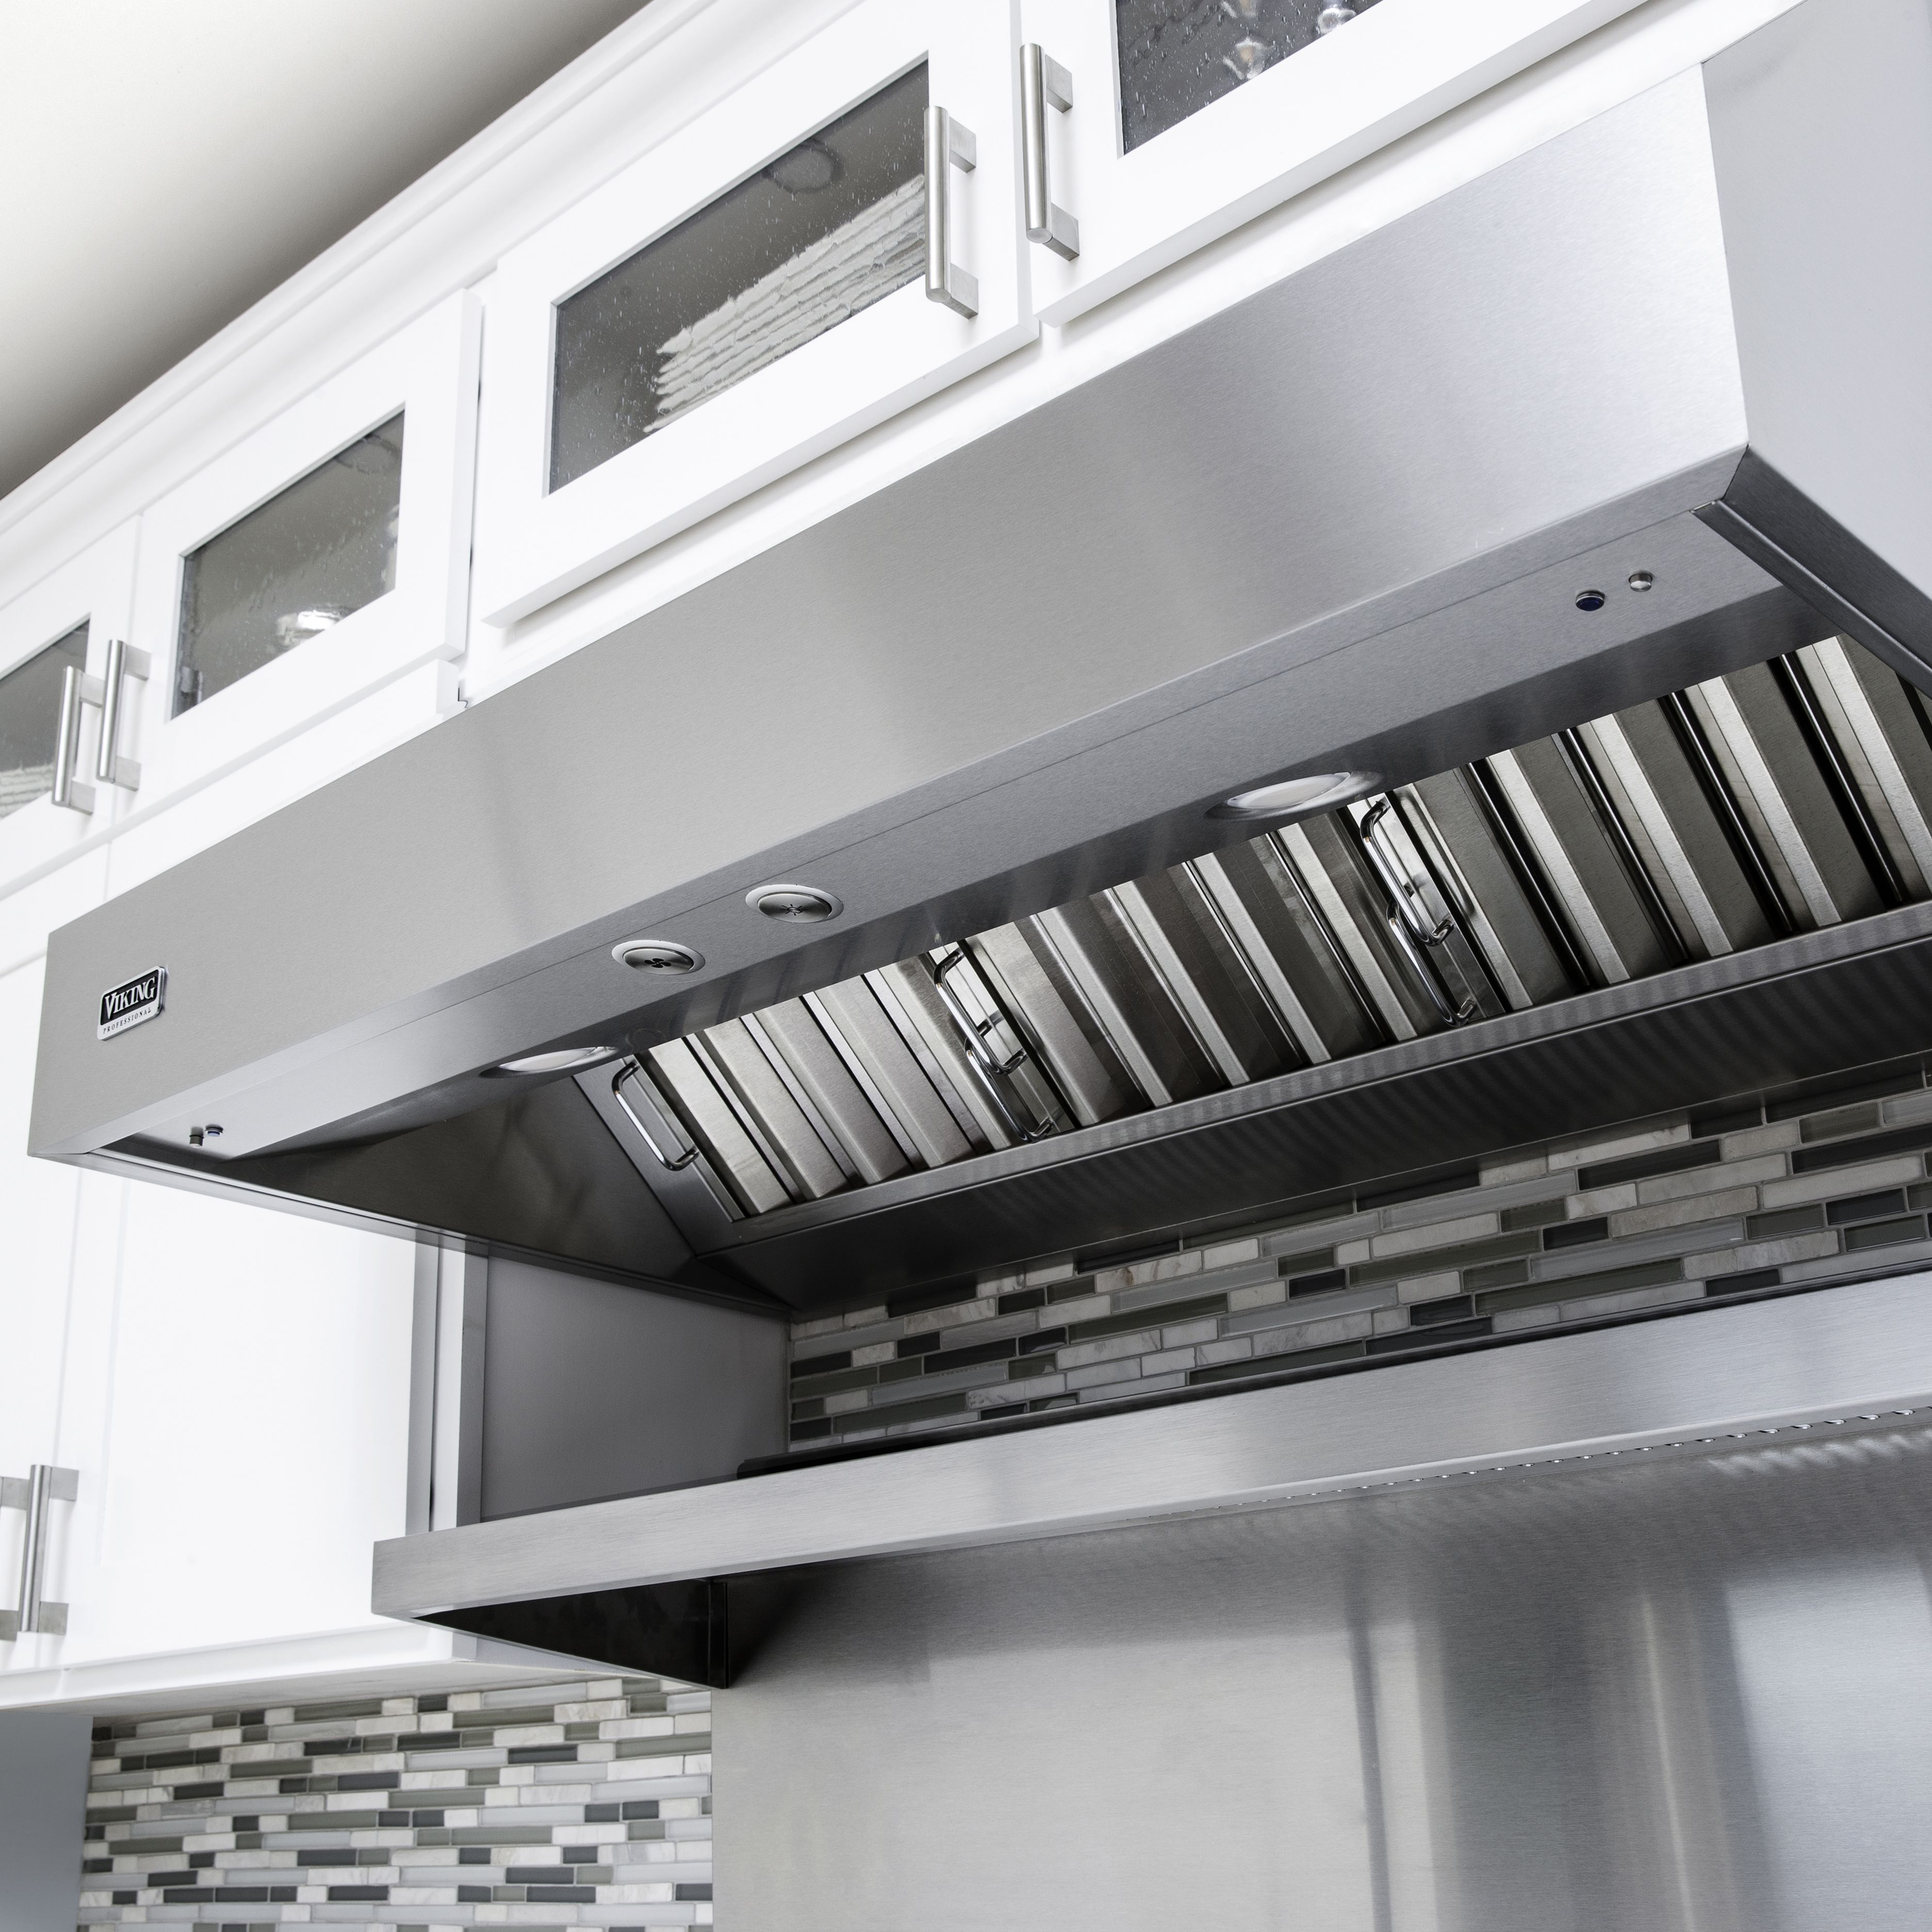 Viking Introduces New And Improved 12 H And 18 H Ventilation Hoods Viking Range Llc